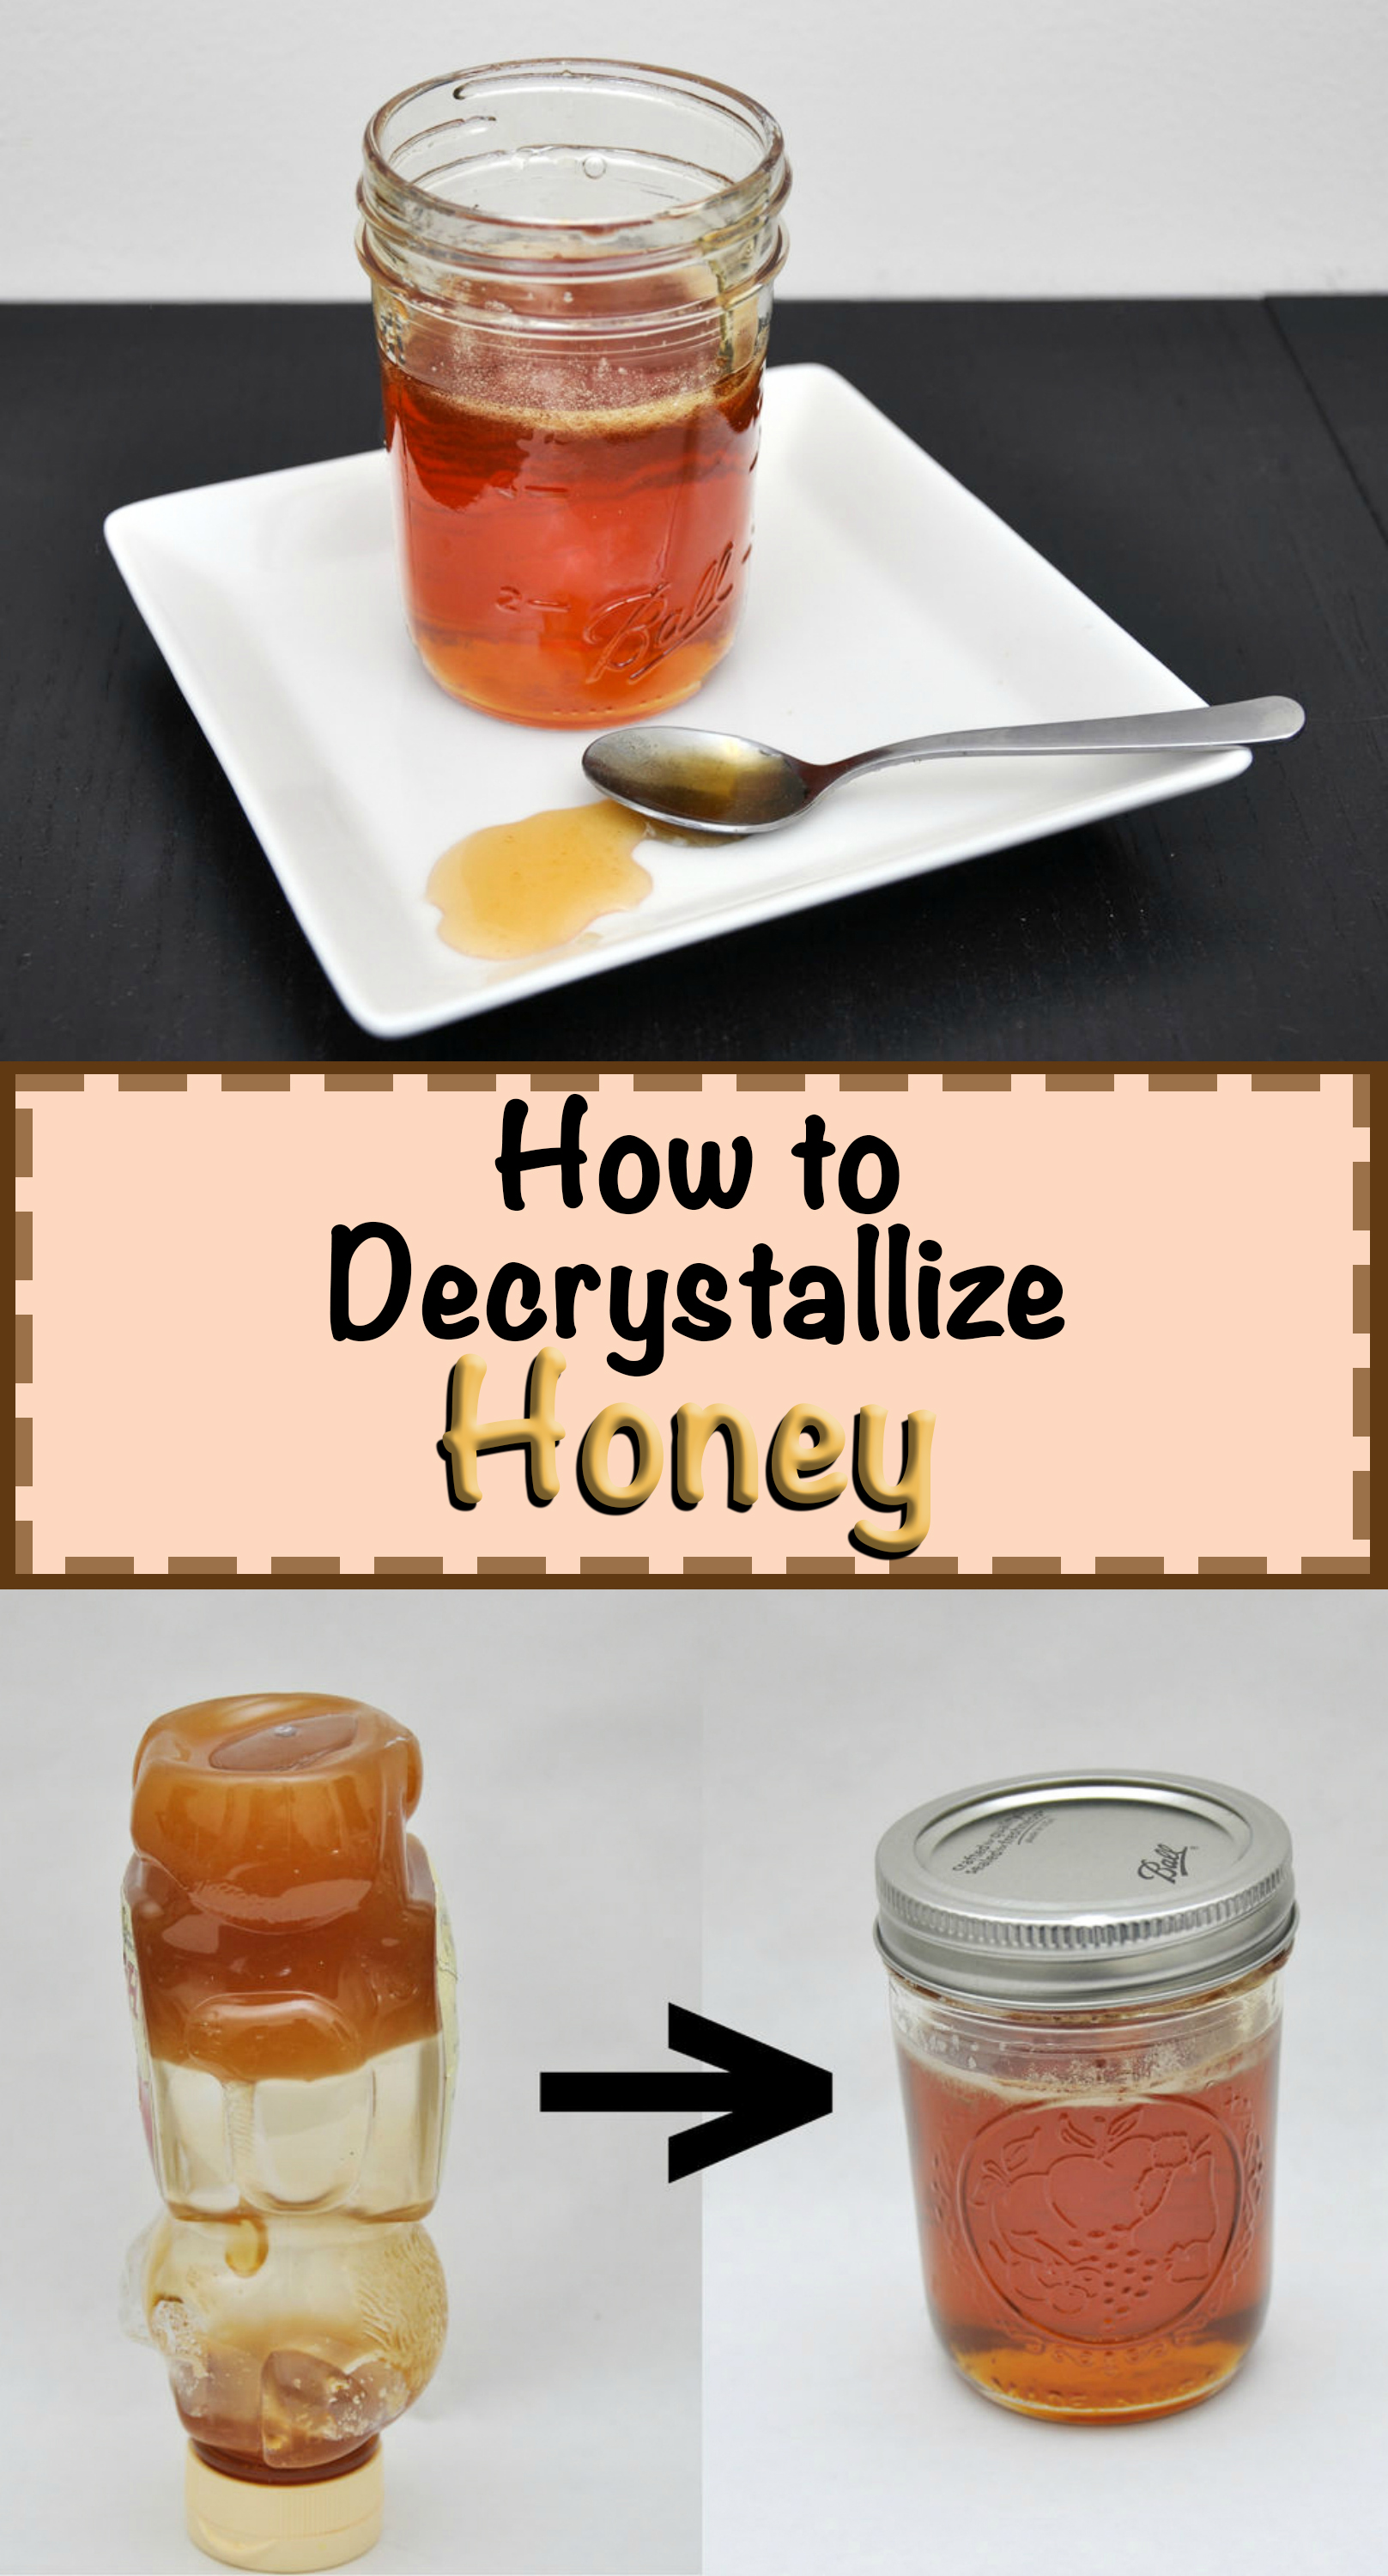 How to Decrystallize Honey: 3 Steps (with Pictures)